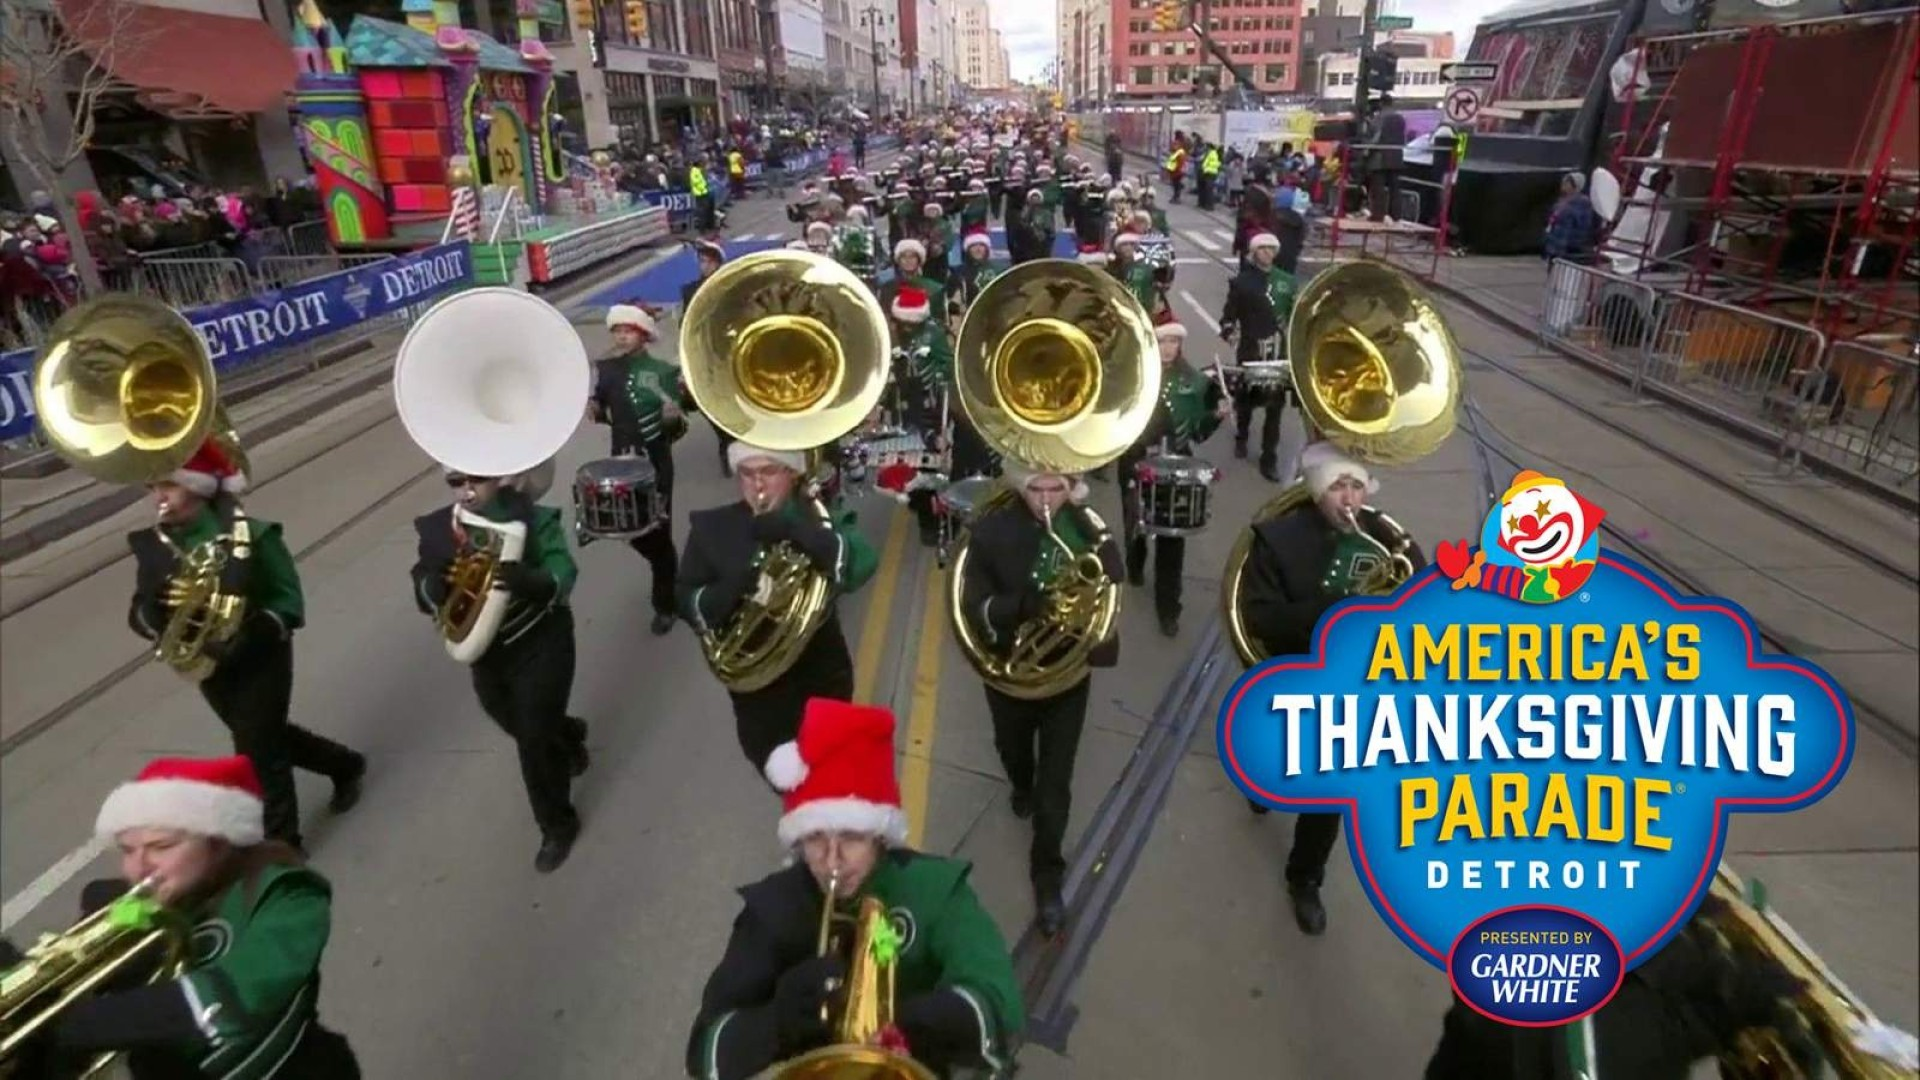 Christmas Parade 2020 Detroit 2020 America's Thanksgiving Parade will be live televised only